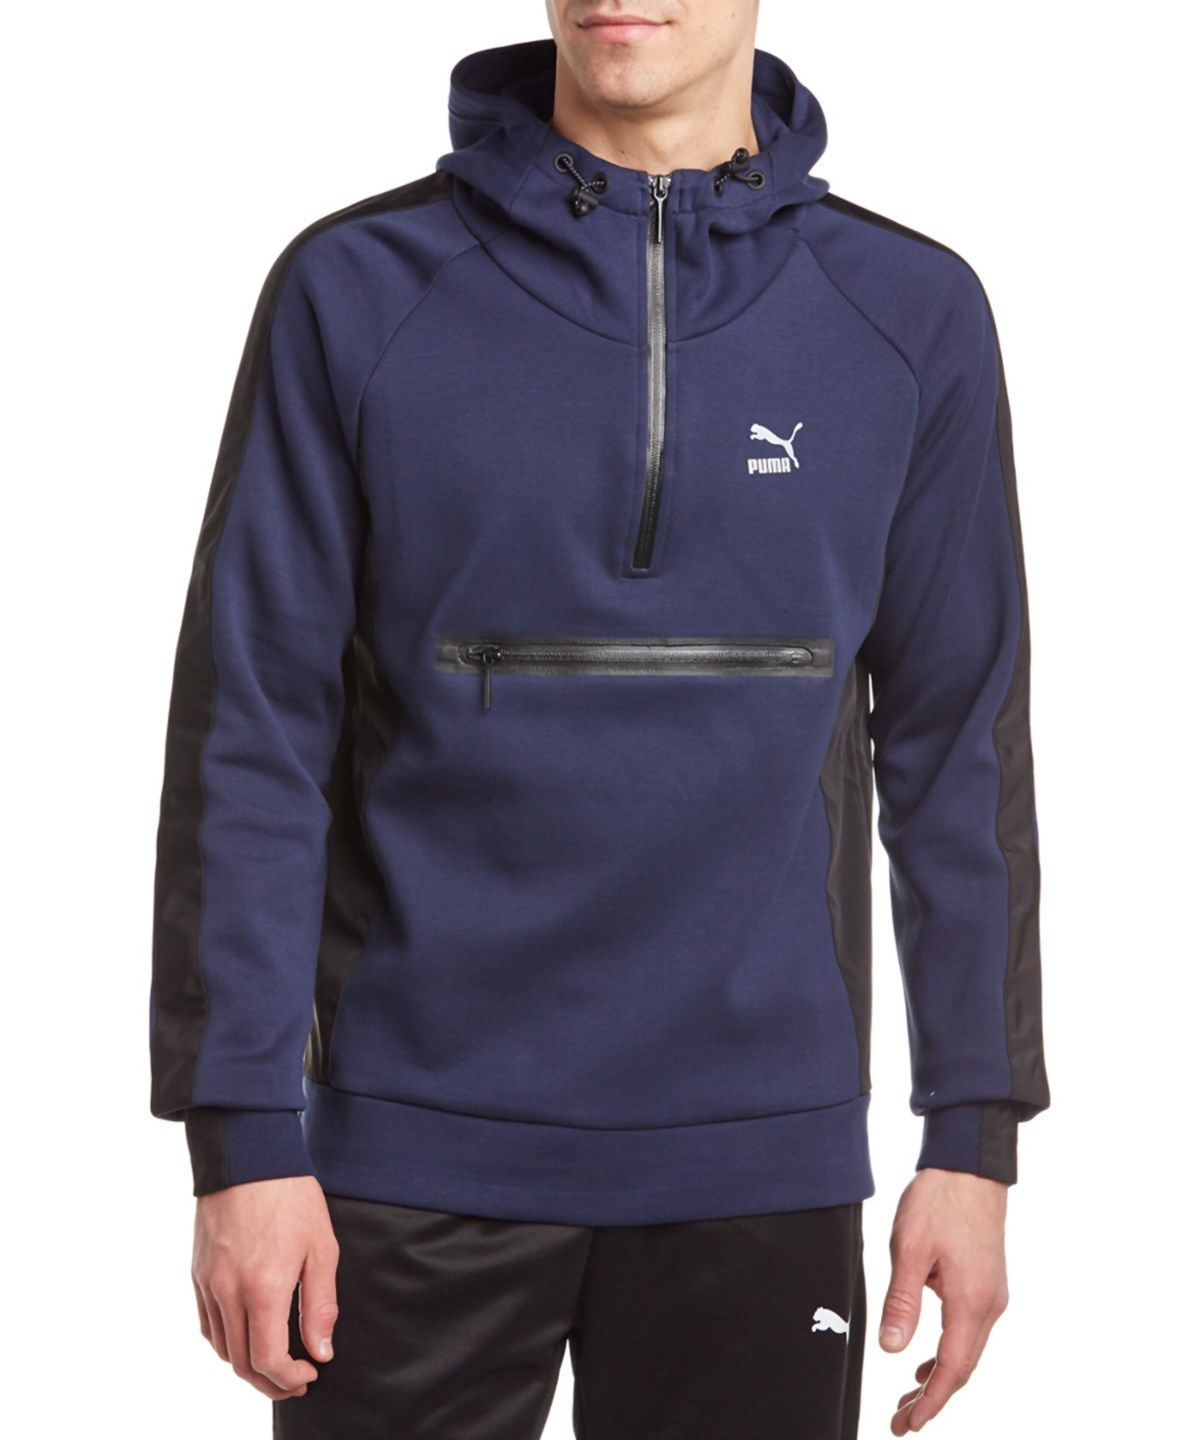 puma shoes sale for men maroon hoodie the early november tickets